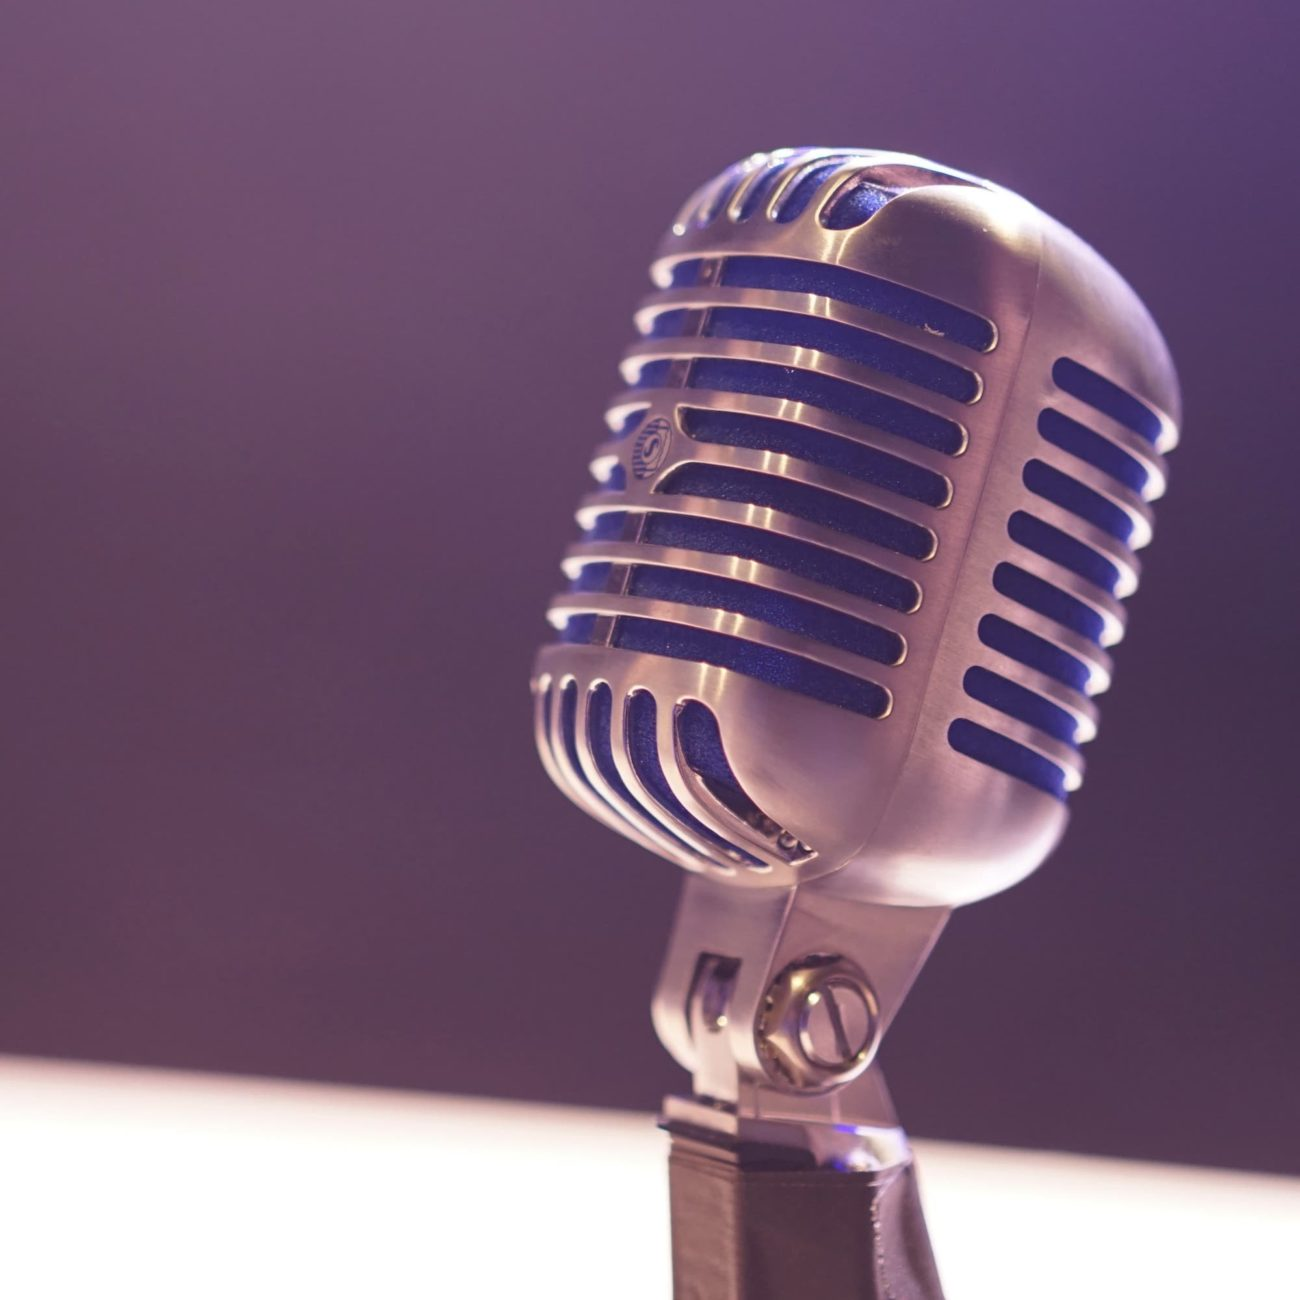 Close up of an old-fashioned radio microphone in front of a purple background.